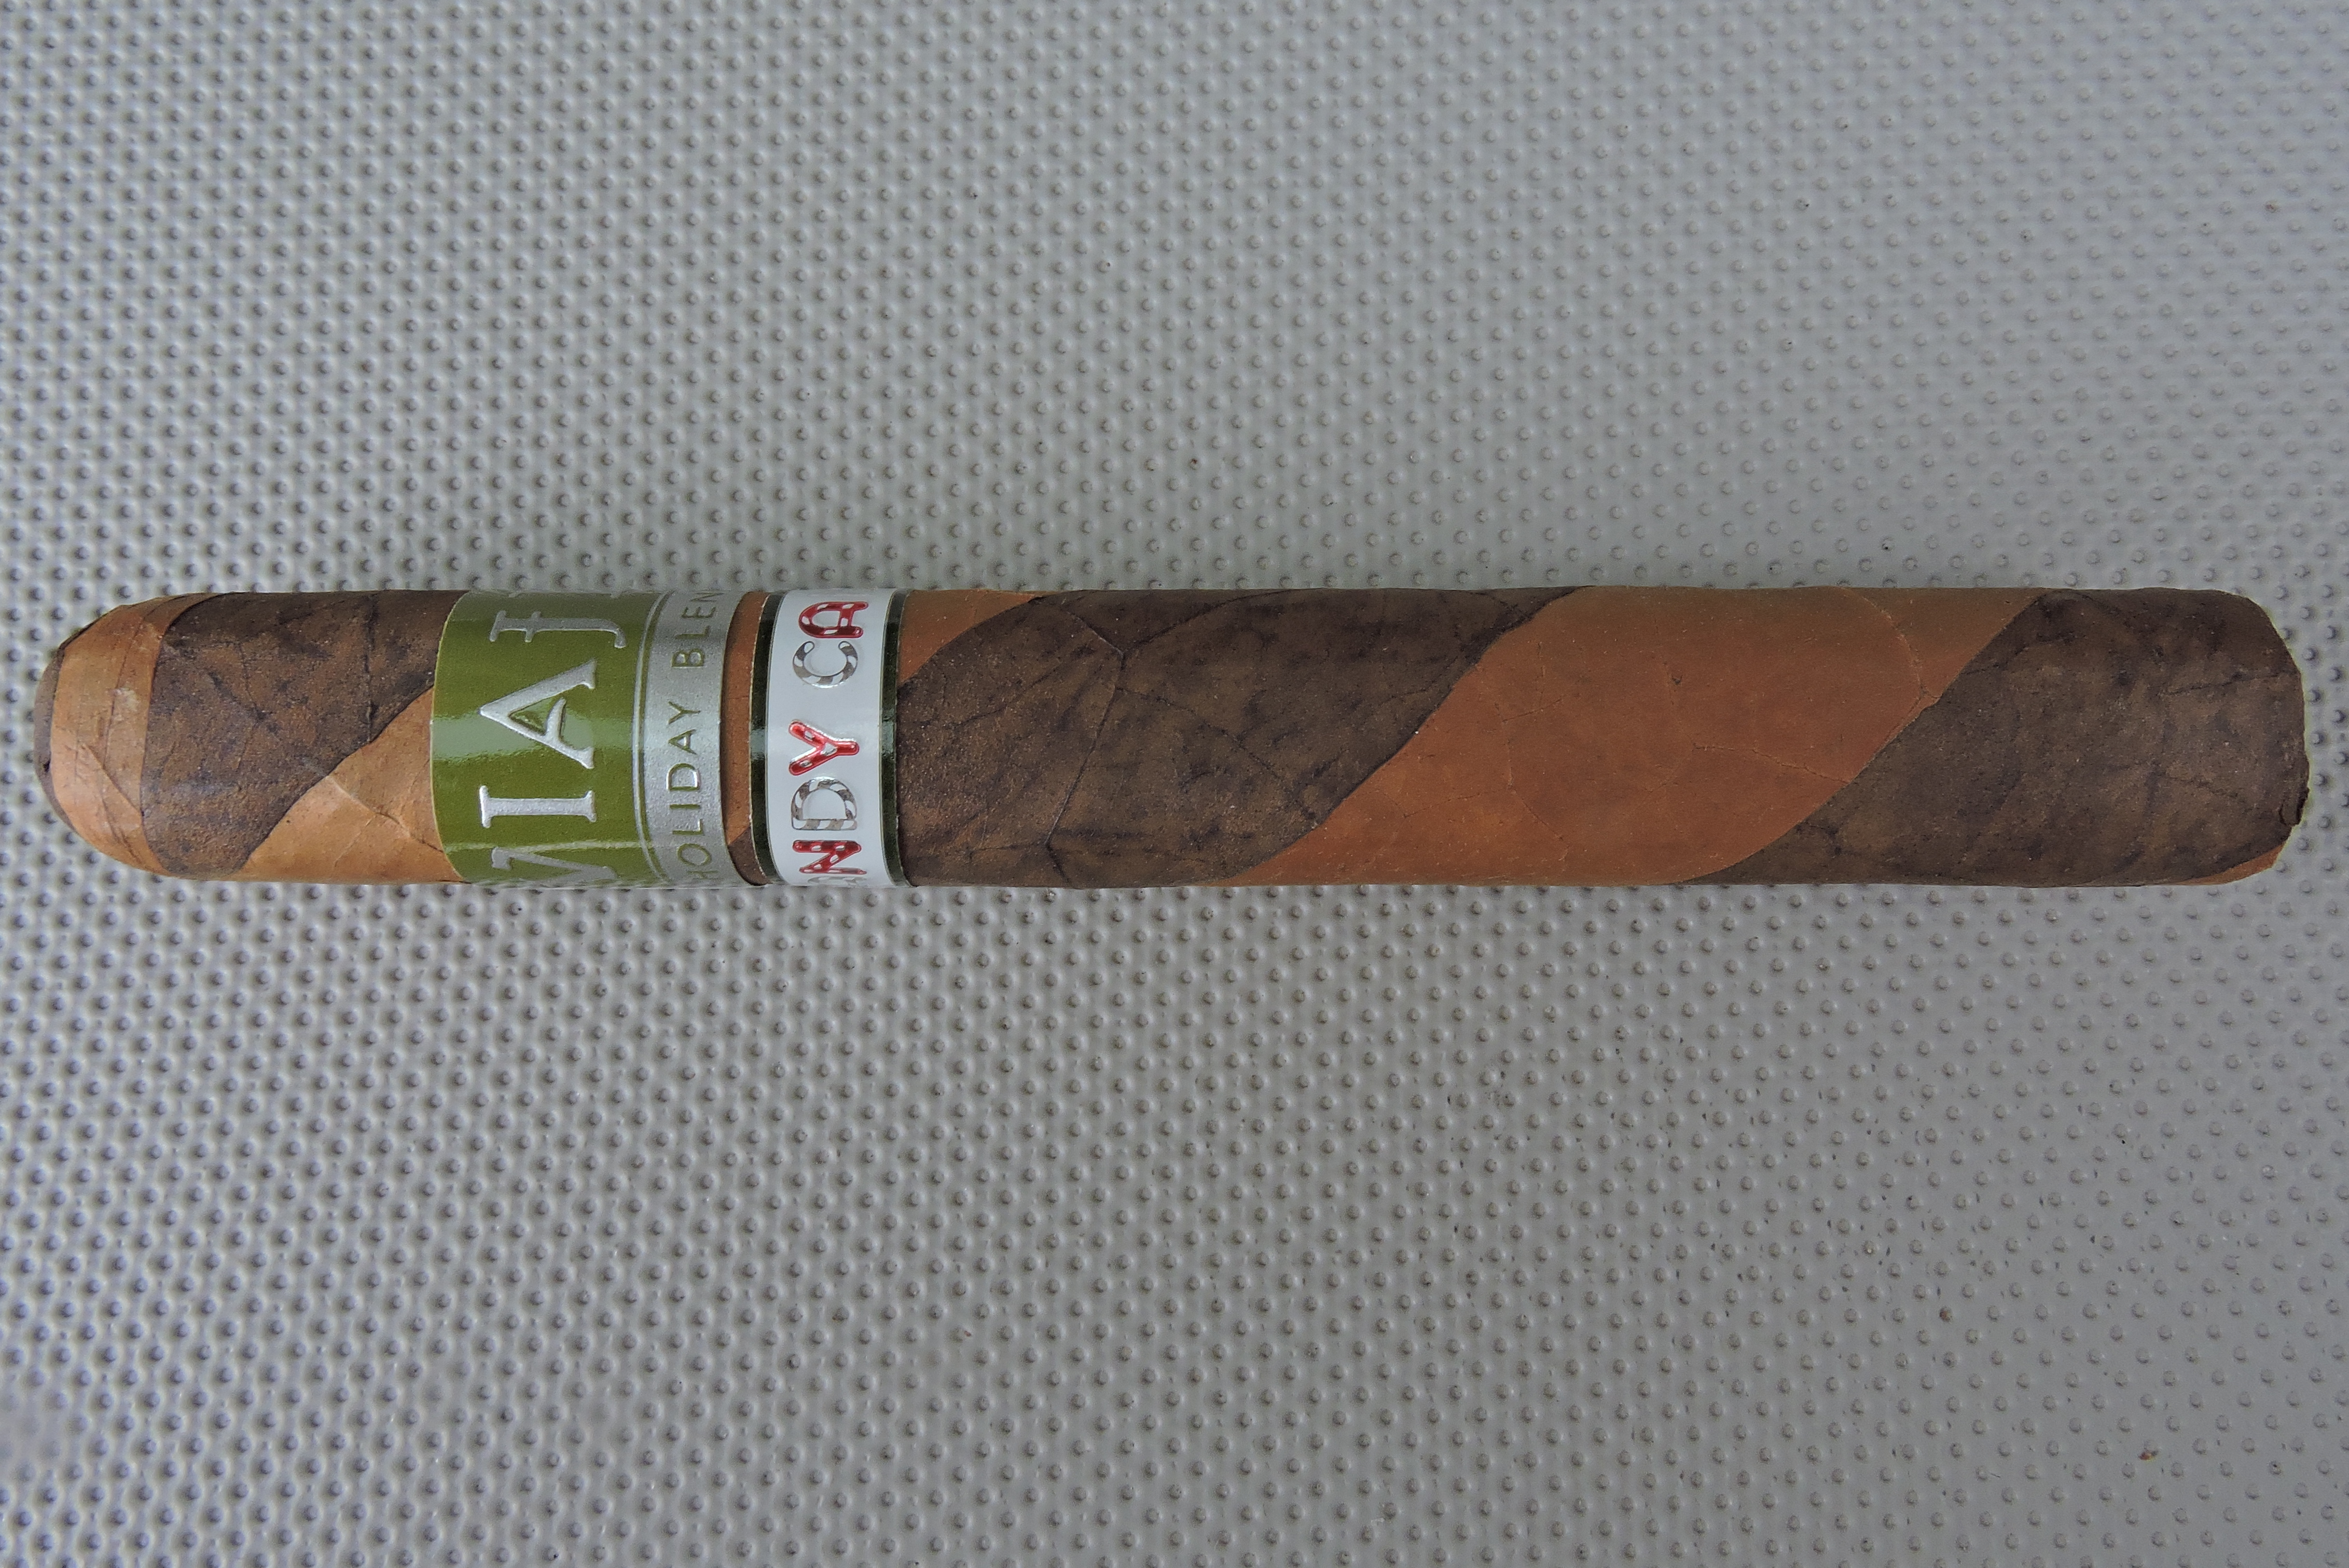 Cigar Review: Viaje Holiday Blend Candy Cane Edición Limitada 2015